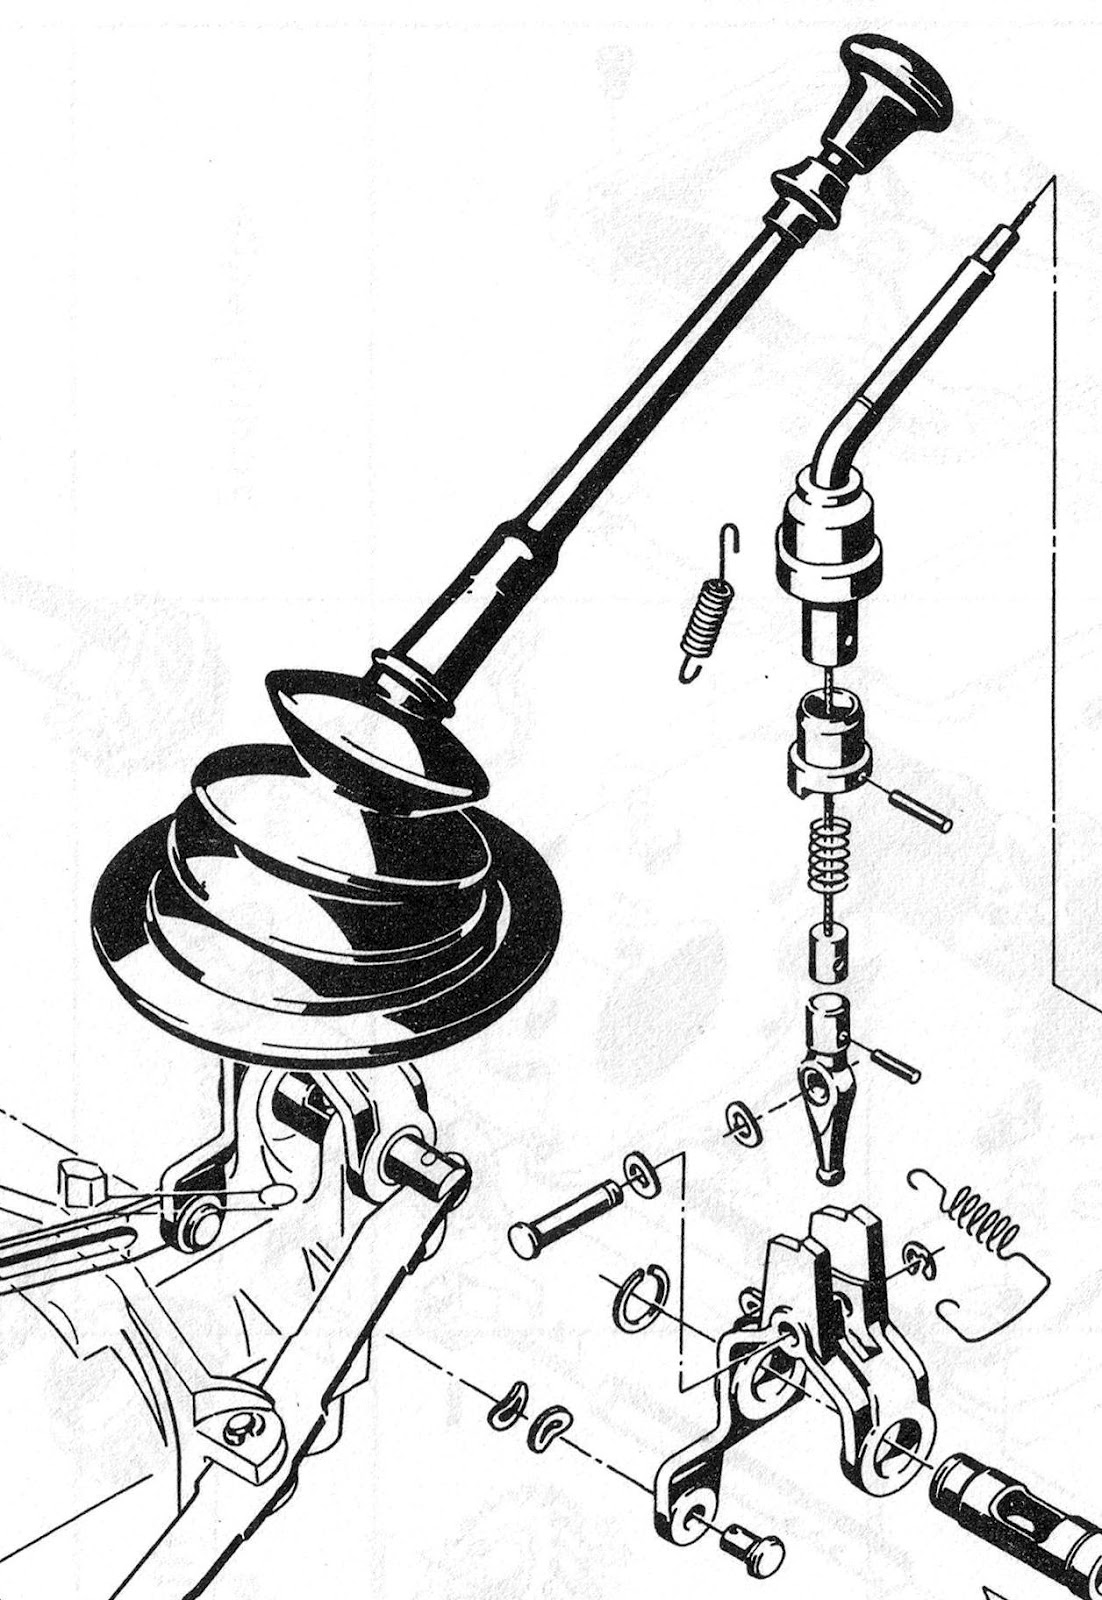 Gear Lever Wiring Diagram Srx Gear Free Engine Image For